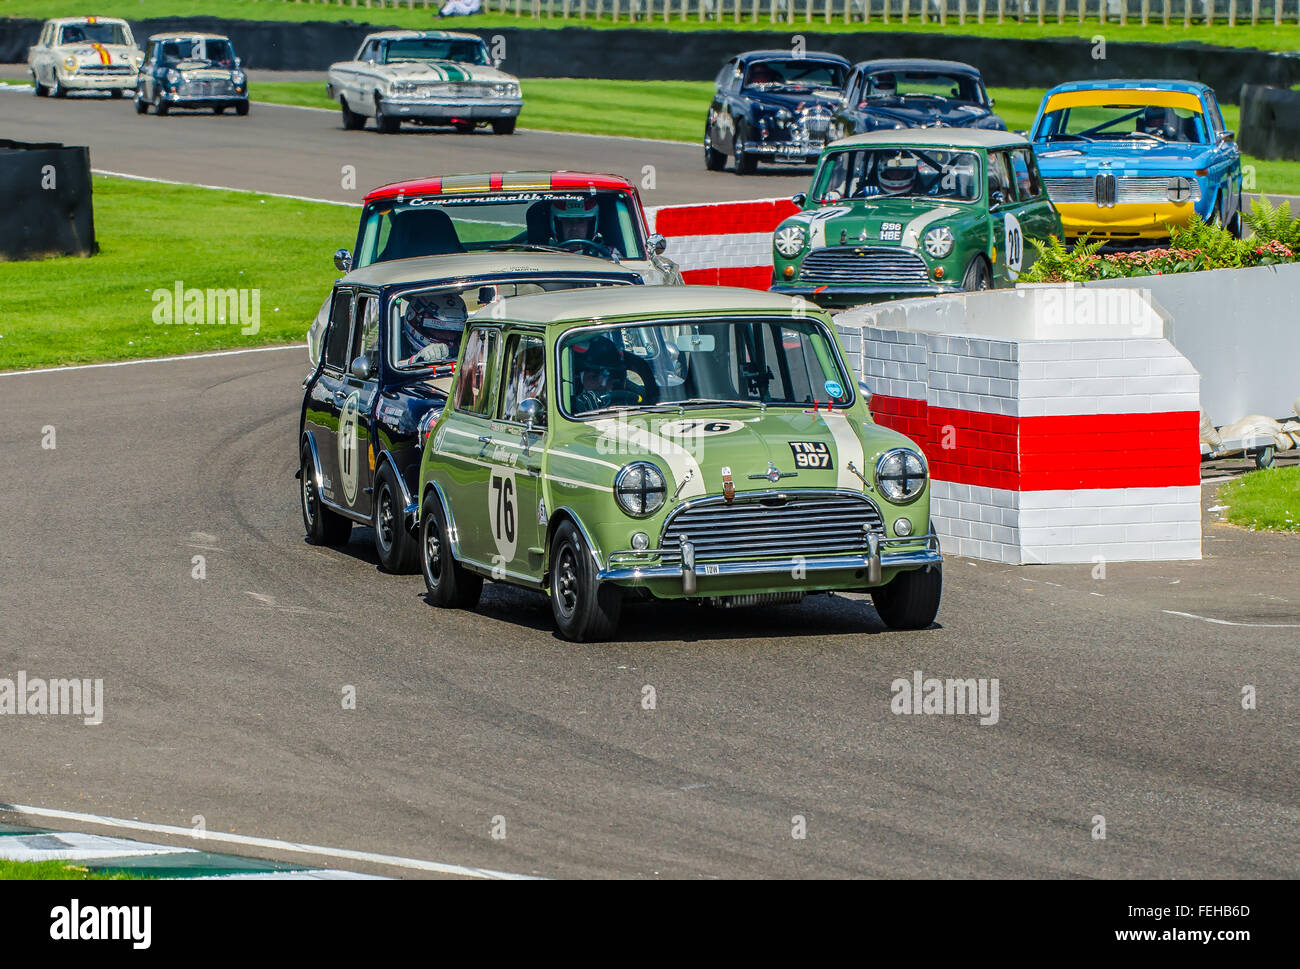 1963 Austin Mini Cooper S is owned by Nick Swift and was raced by     1963 Austin Mini Cooper S is owned by Nick Swift and was raced by him and  Karun Chandhok at the 2015 Goodwood Revival  Space for copy